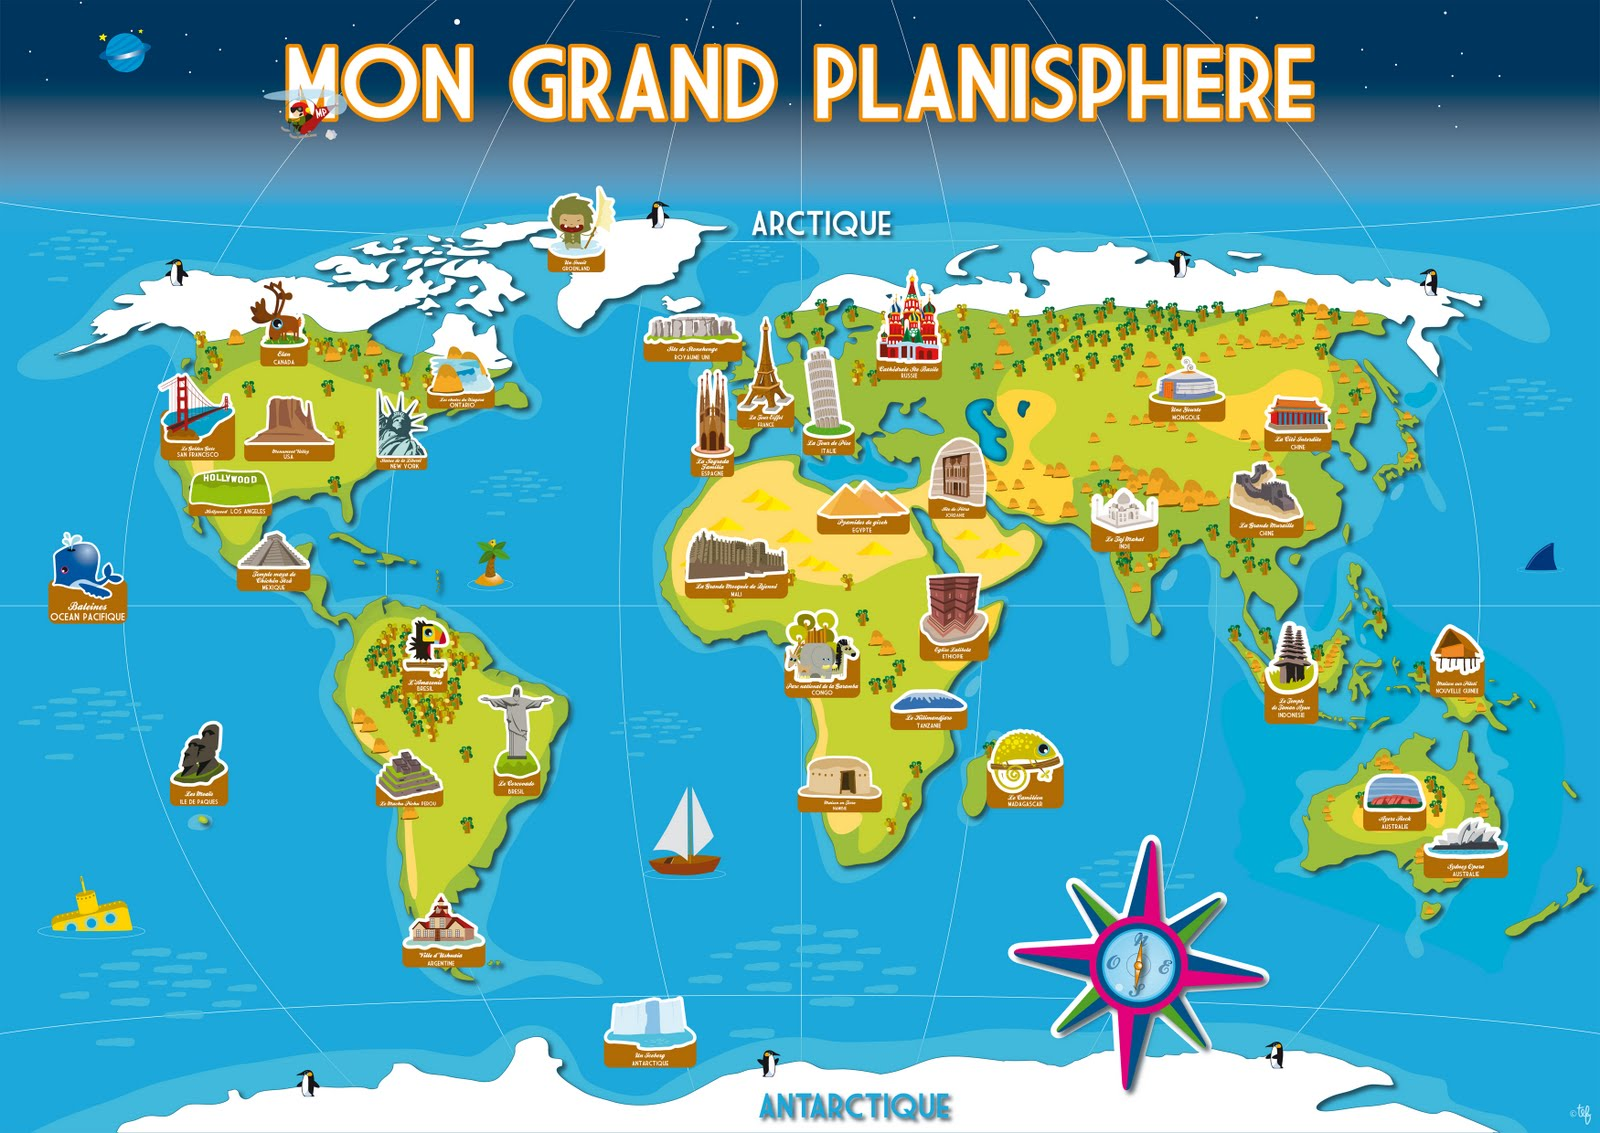 tef graphiste illustrateur enfant 0609474204 tefgraph planisphere et monuments